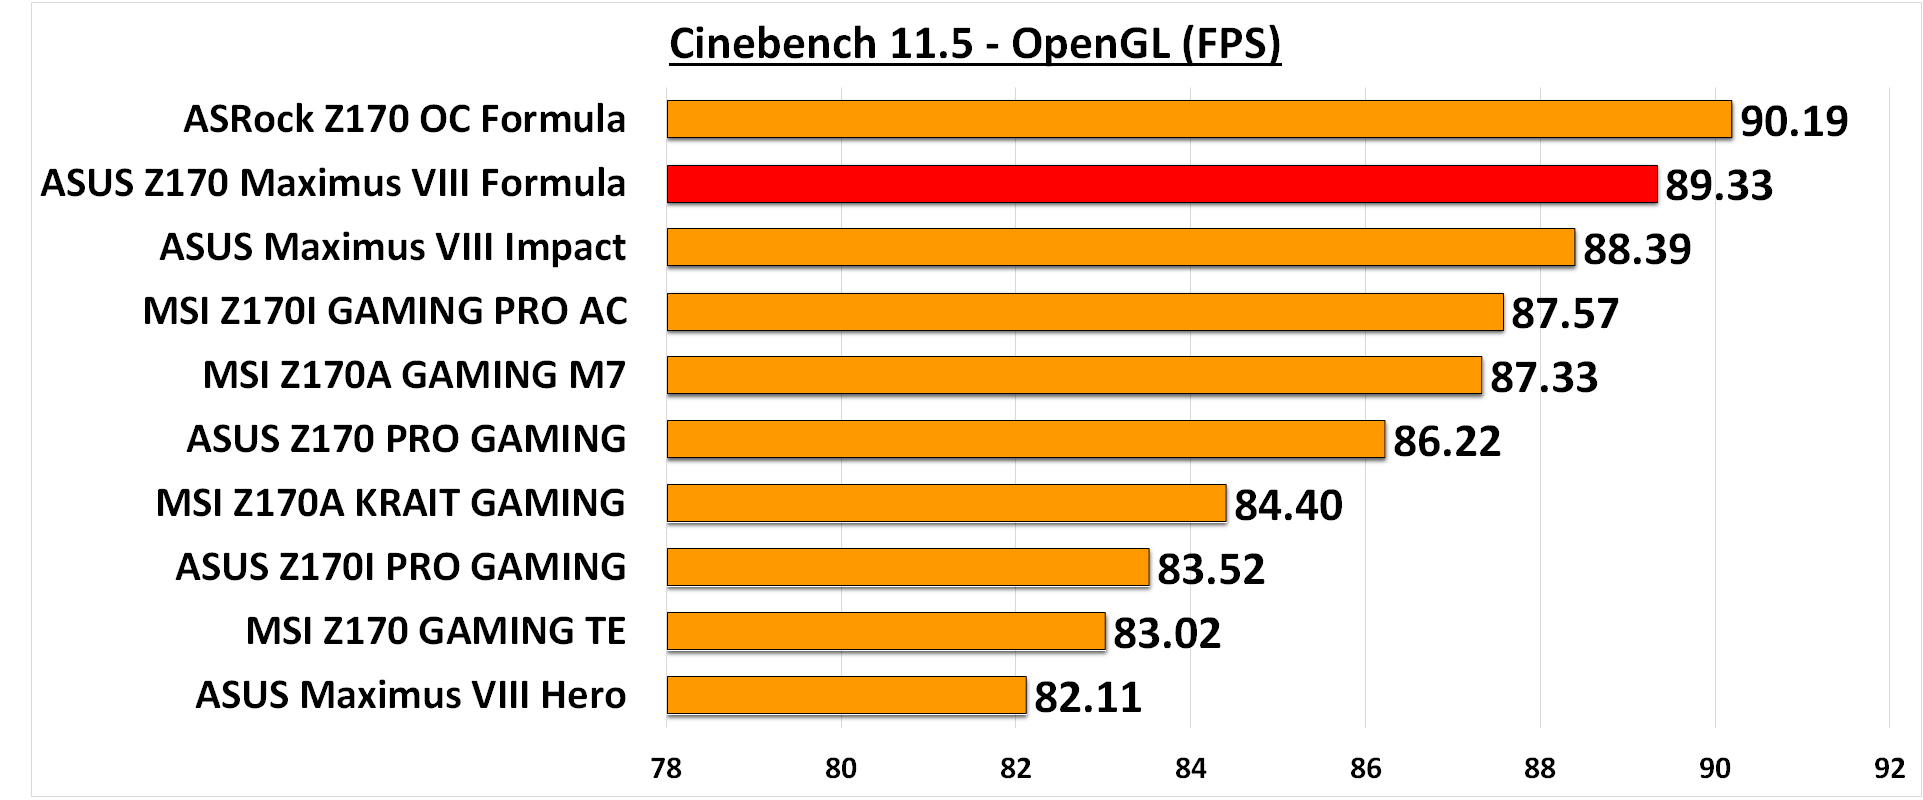 Cinebench 11.5 OpenGL